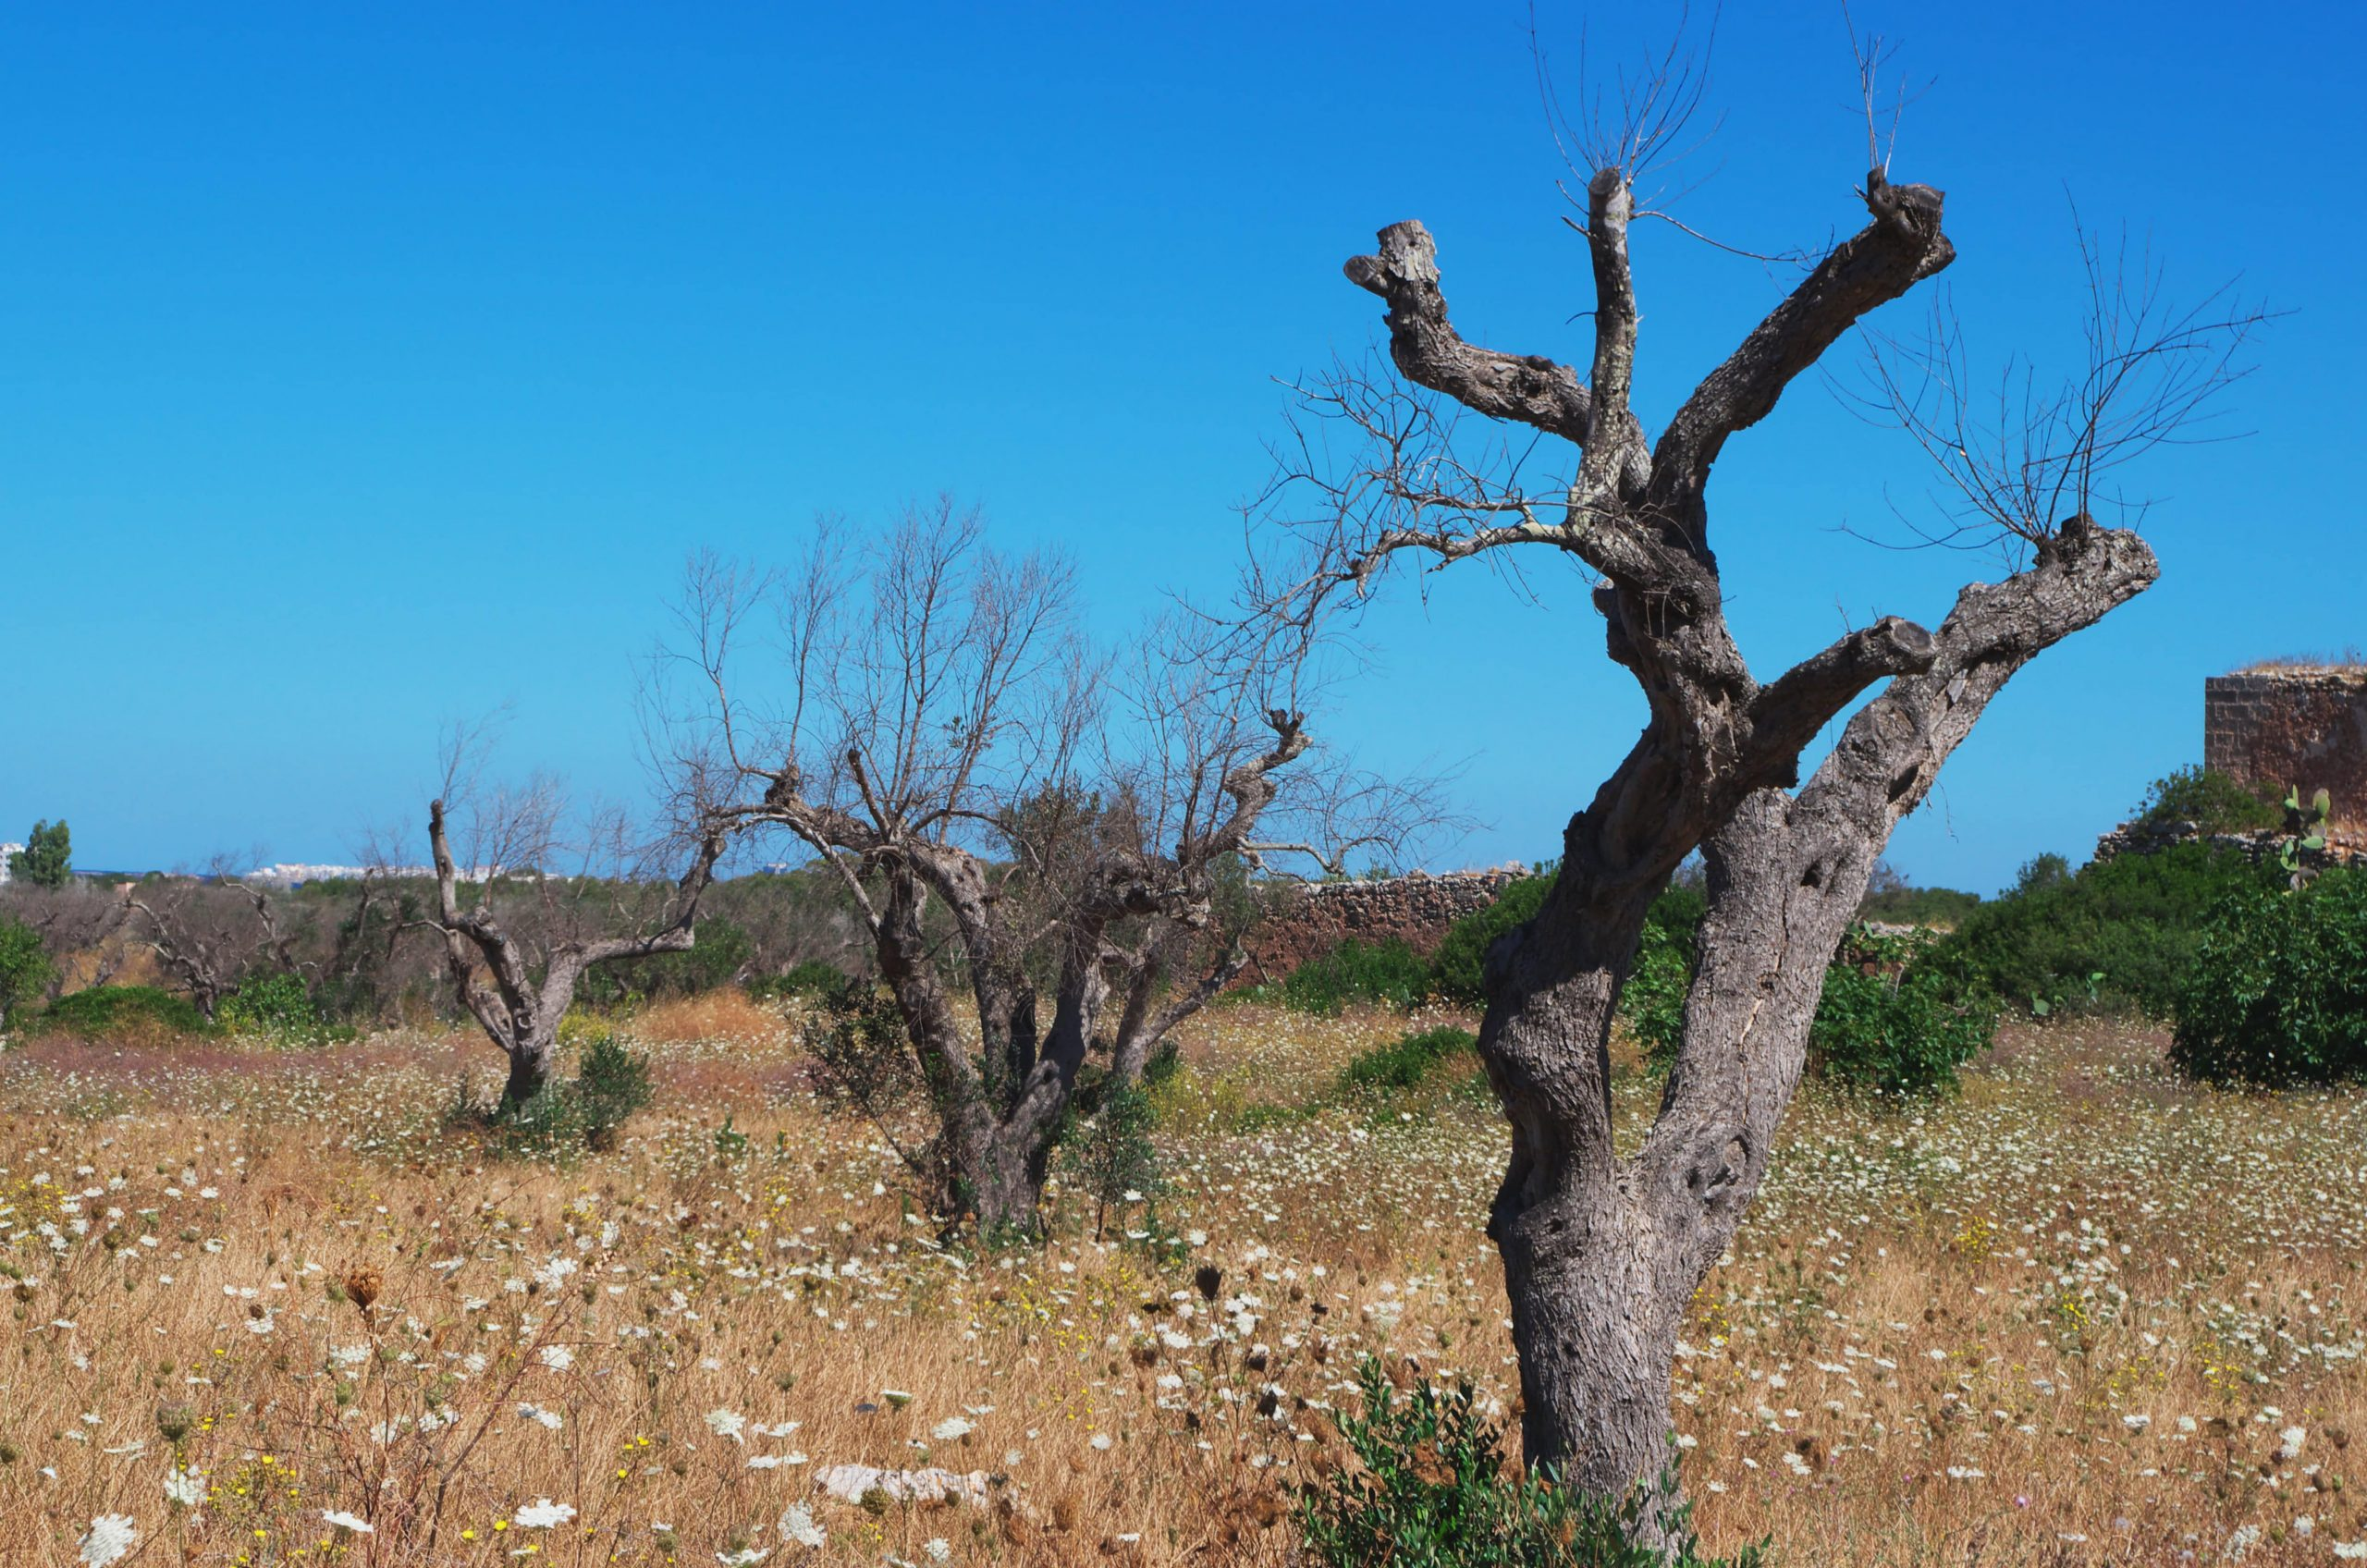 threat of xylella in Europe